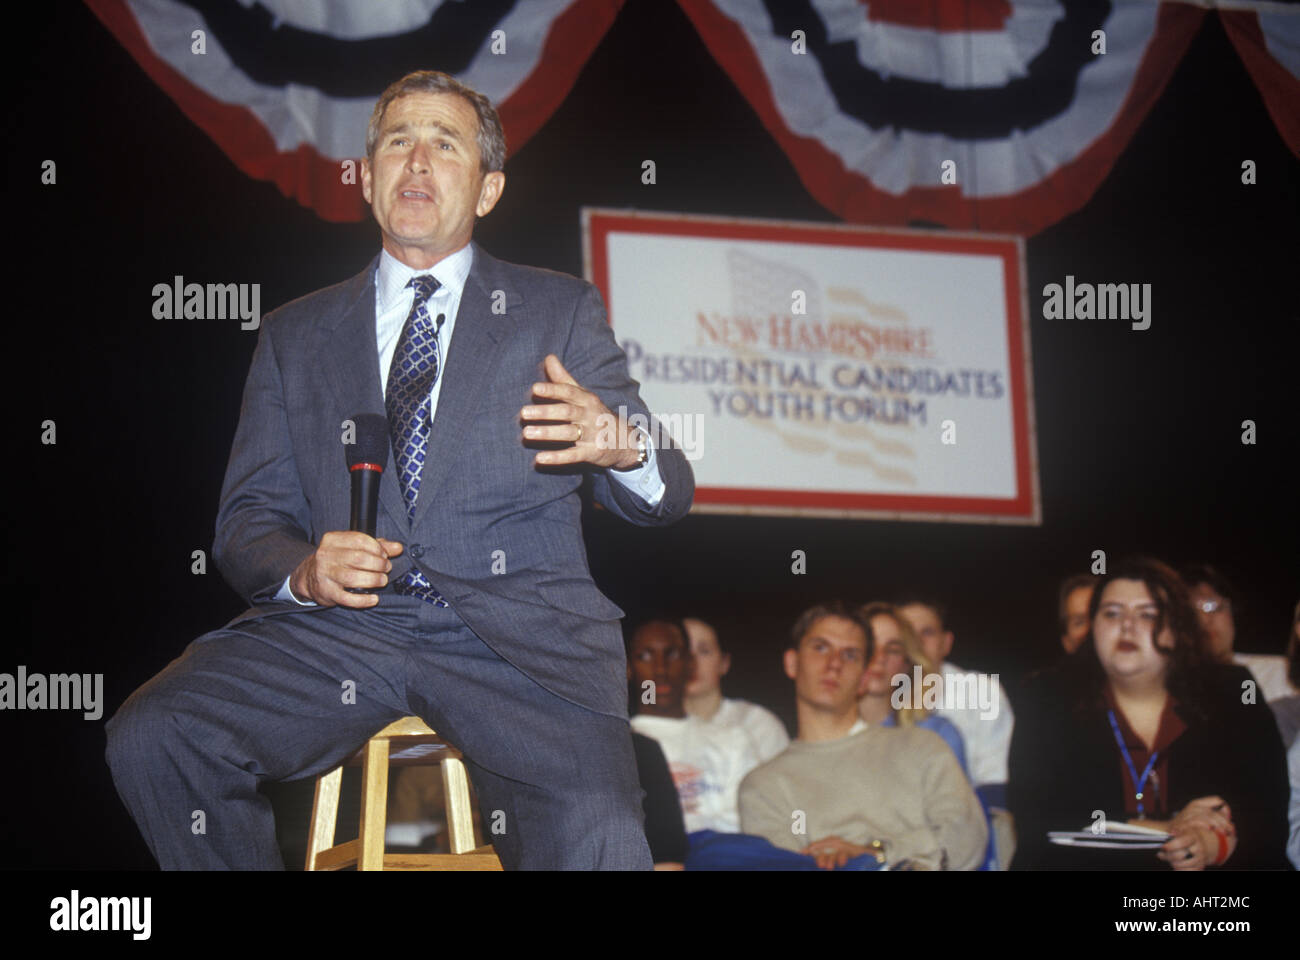 George W Bush addressing the New Hampshire Presidential Candidates Youth Forum January 2000 Stock Photo